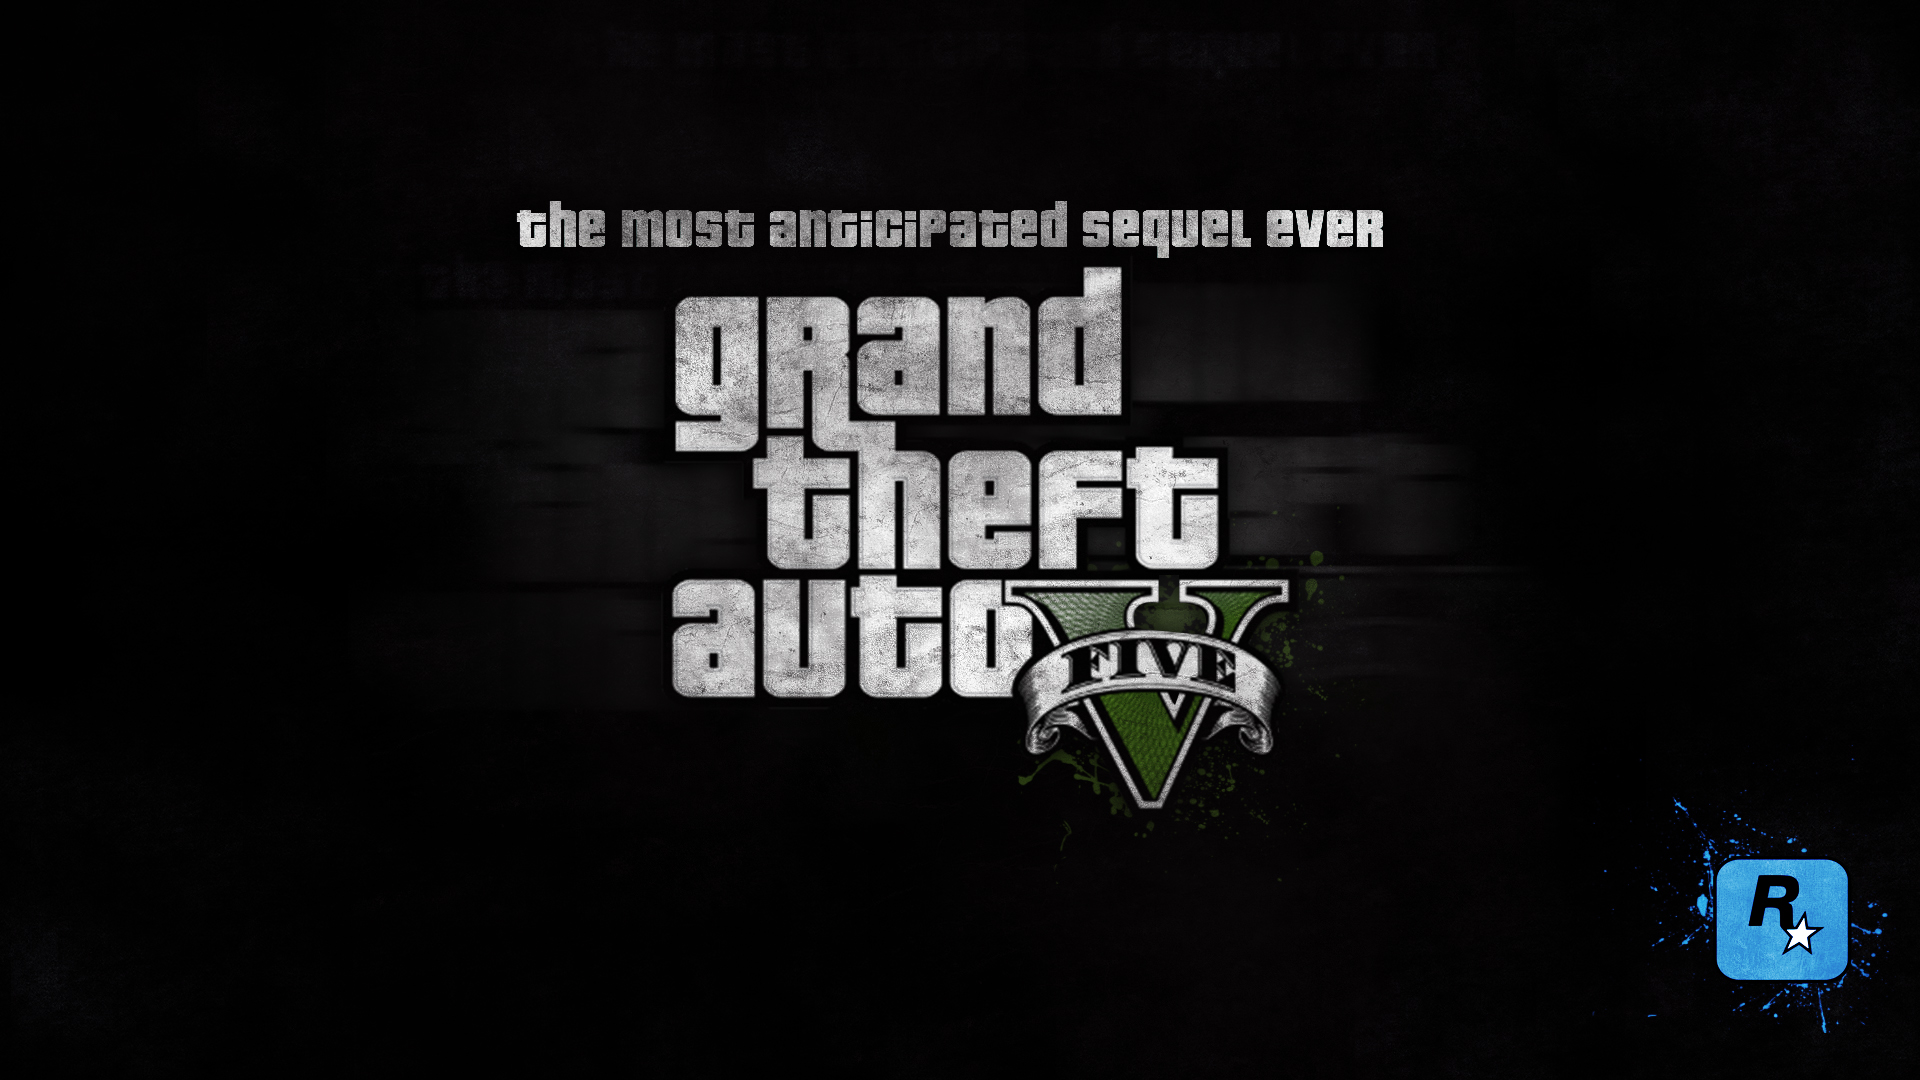 Gta 5 Online Wallpaper 1920x1080 Gta 5 grunge wallpaper 1920x1080